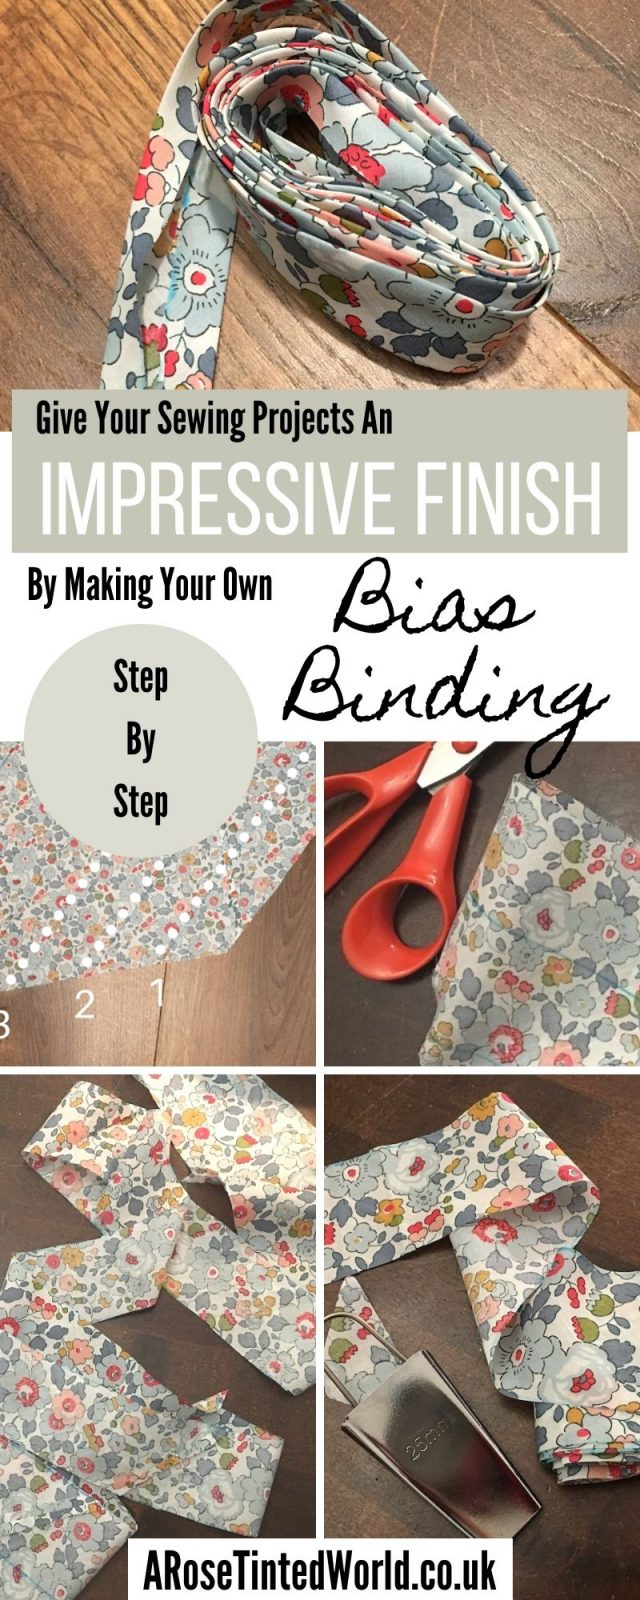 How To Make Your Own Continuous Bias Binding - It is nice to finish your sewing projects off with a neat and pretty bias. Here is how to make your own. Pictorial tutorial. Sewing hints tips tricks and hacks. Bias tape making tutorial. #biasbinding #biastape #bias #sewingtutorial #howtomake #howtosew #makeyourown #makebiastape